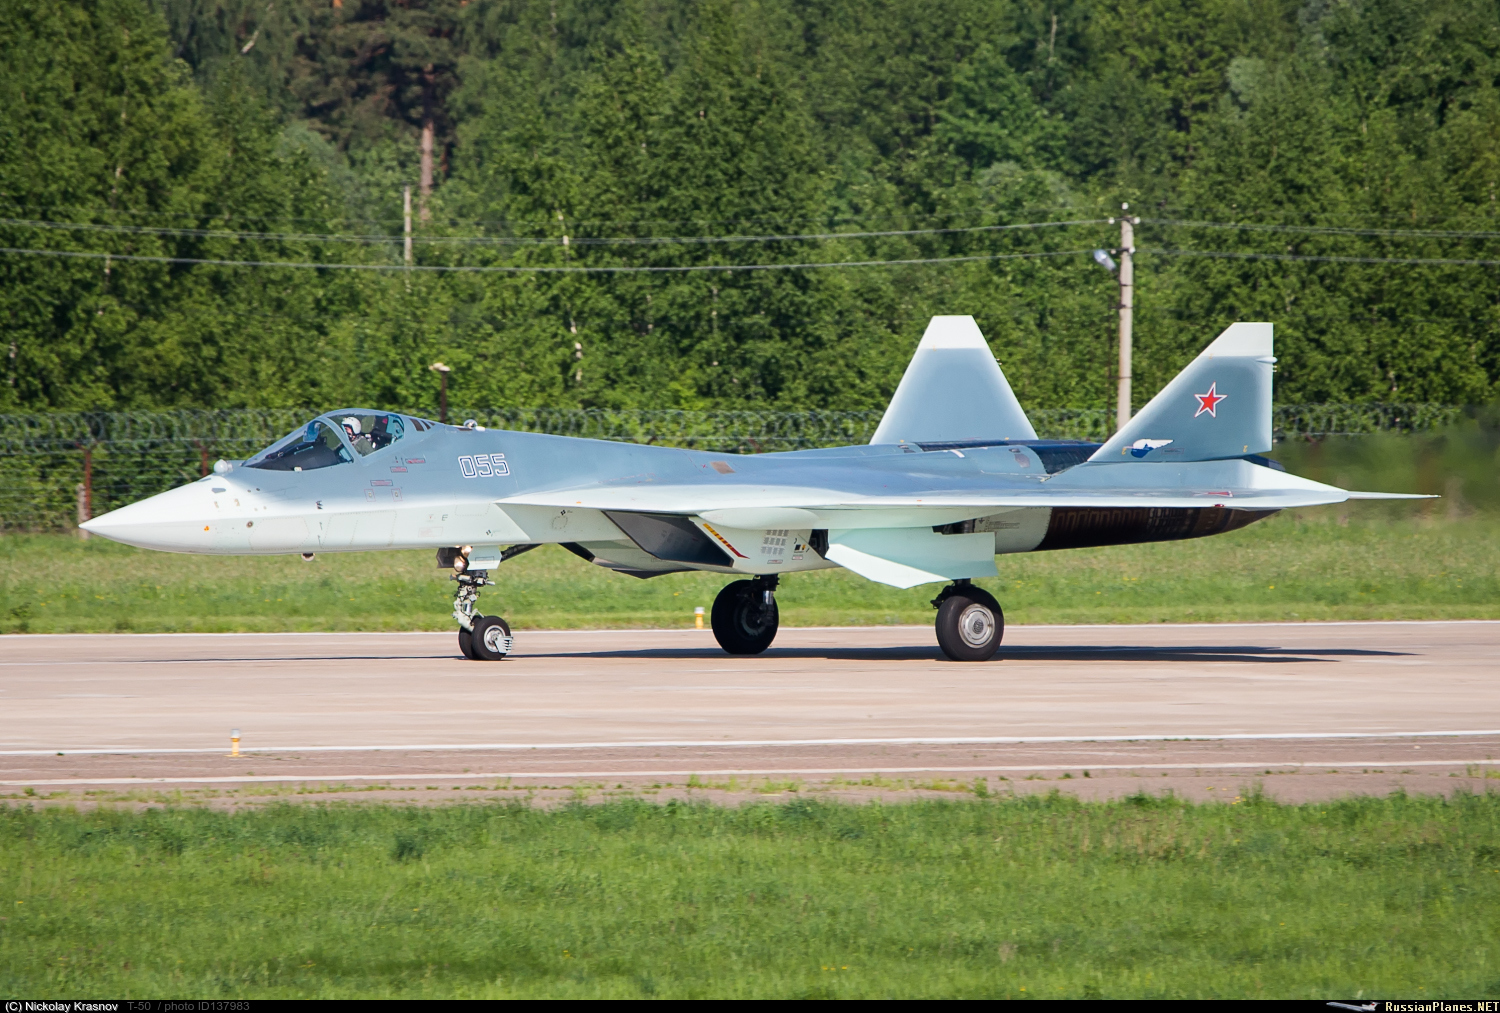 http://russianplanes.net/images/to138000/137983.jpg